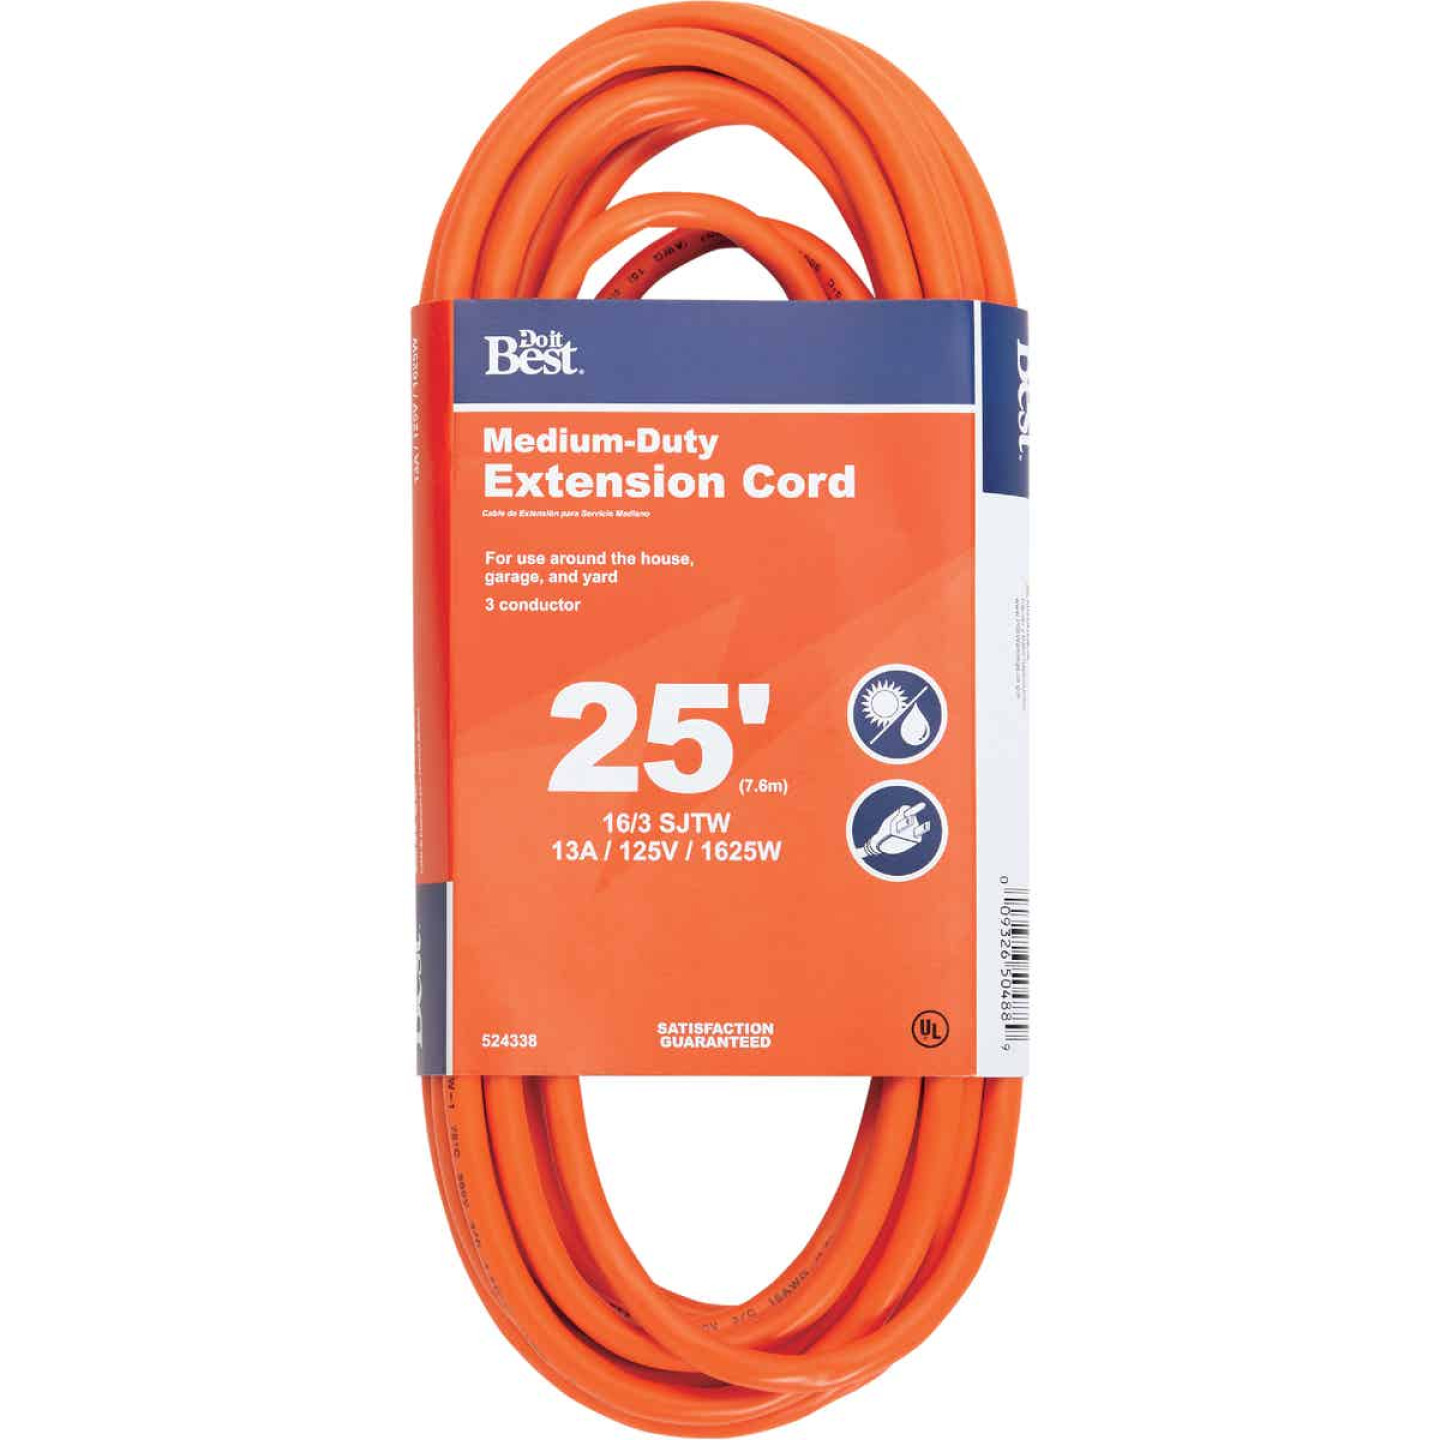 Do it Best 25 Ft. 16/3 Outdoor Extension Cord Image 1